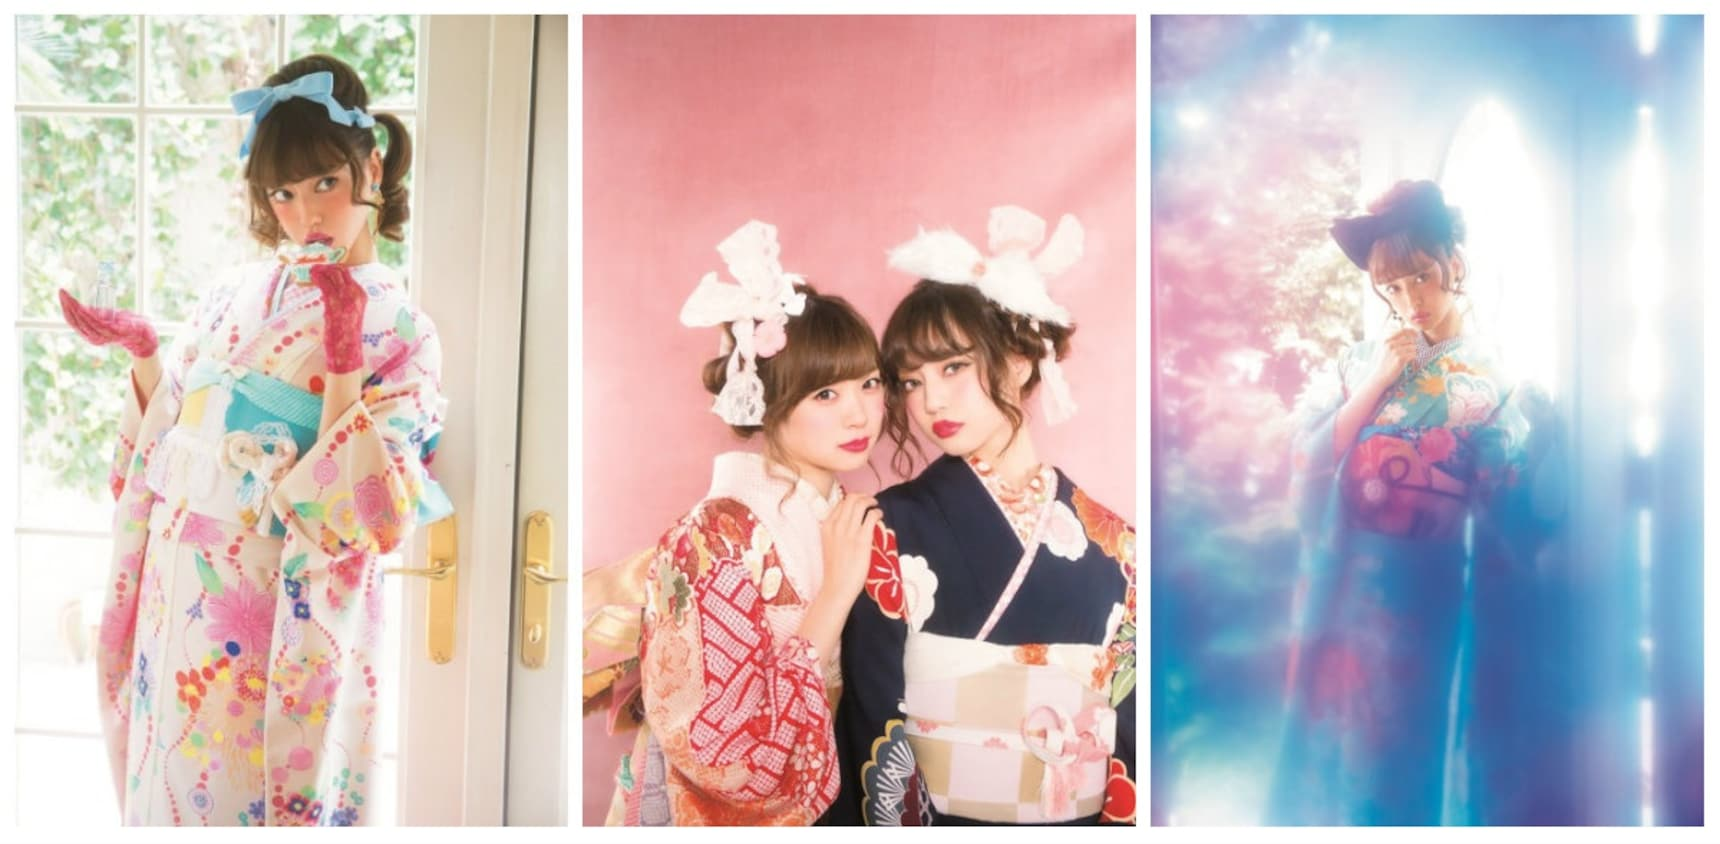 The Year of Kimono has Arrived!